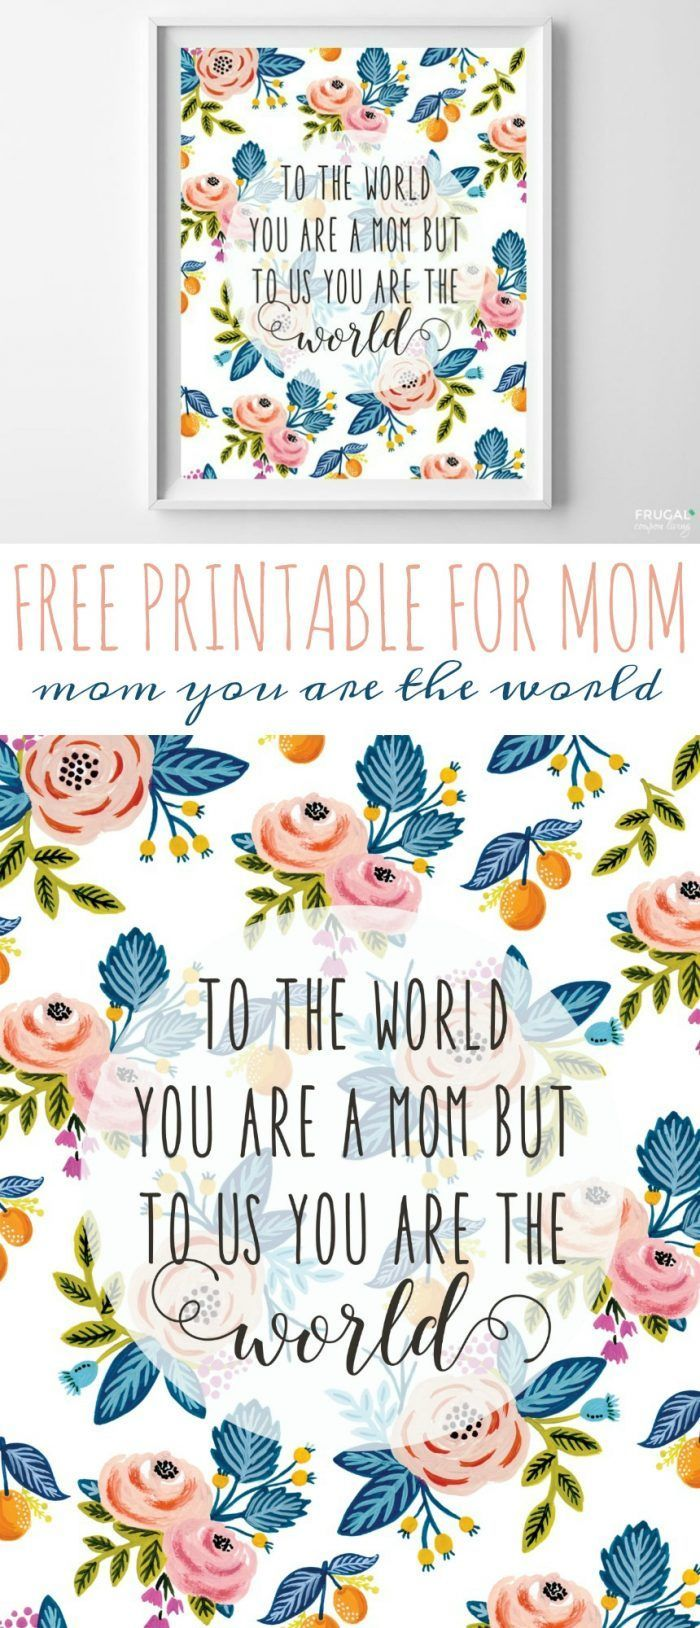 Diy Crafts This Is A Perfect And Free Mother S Day Gift Idea We